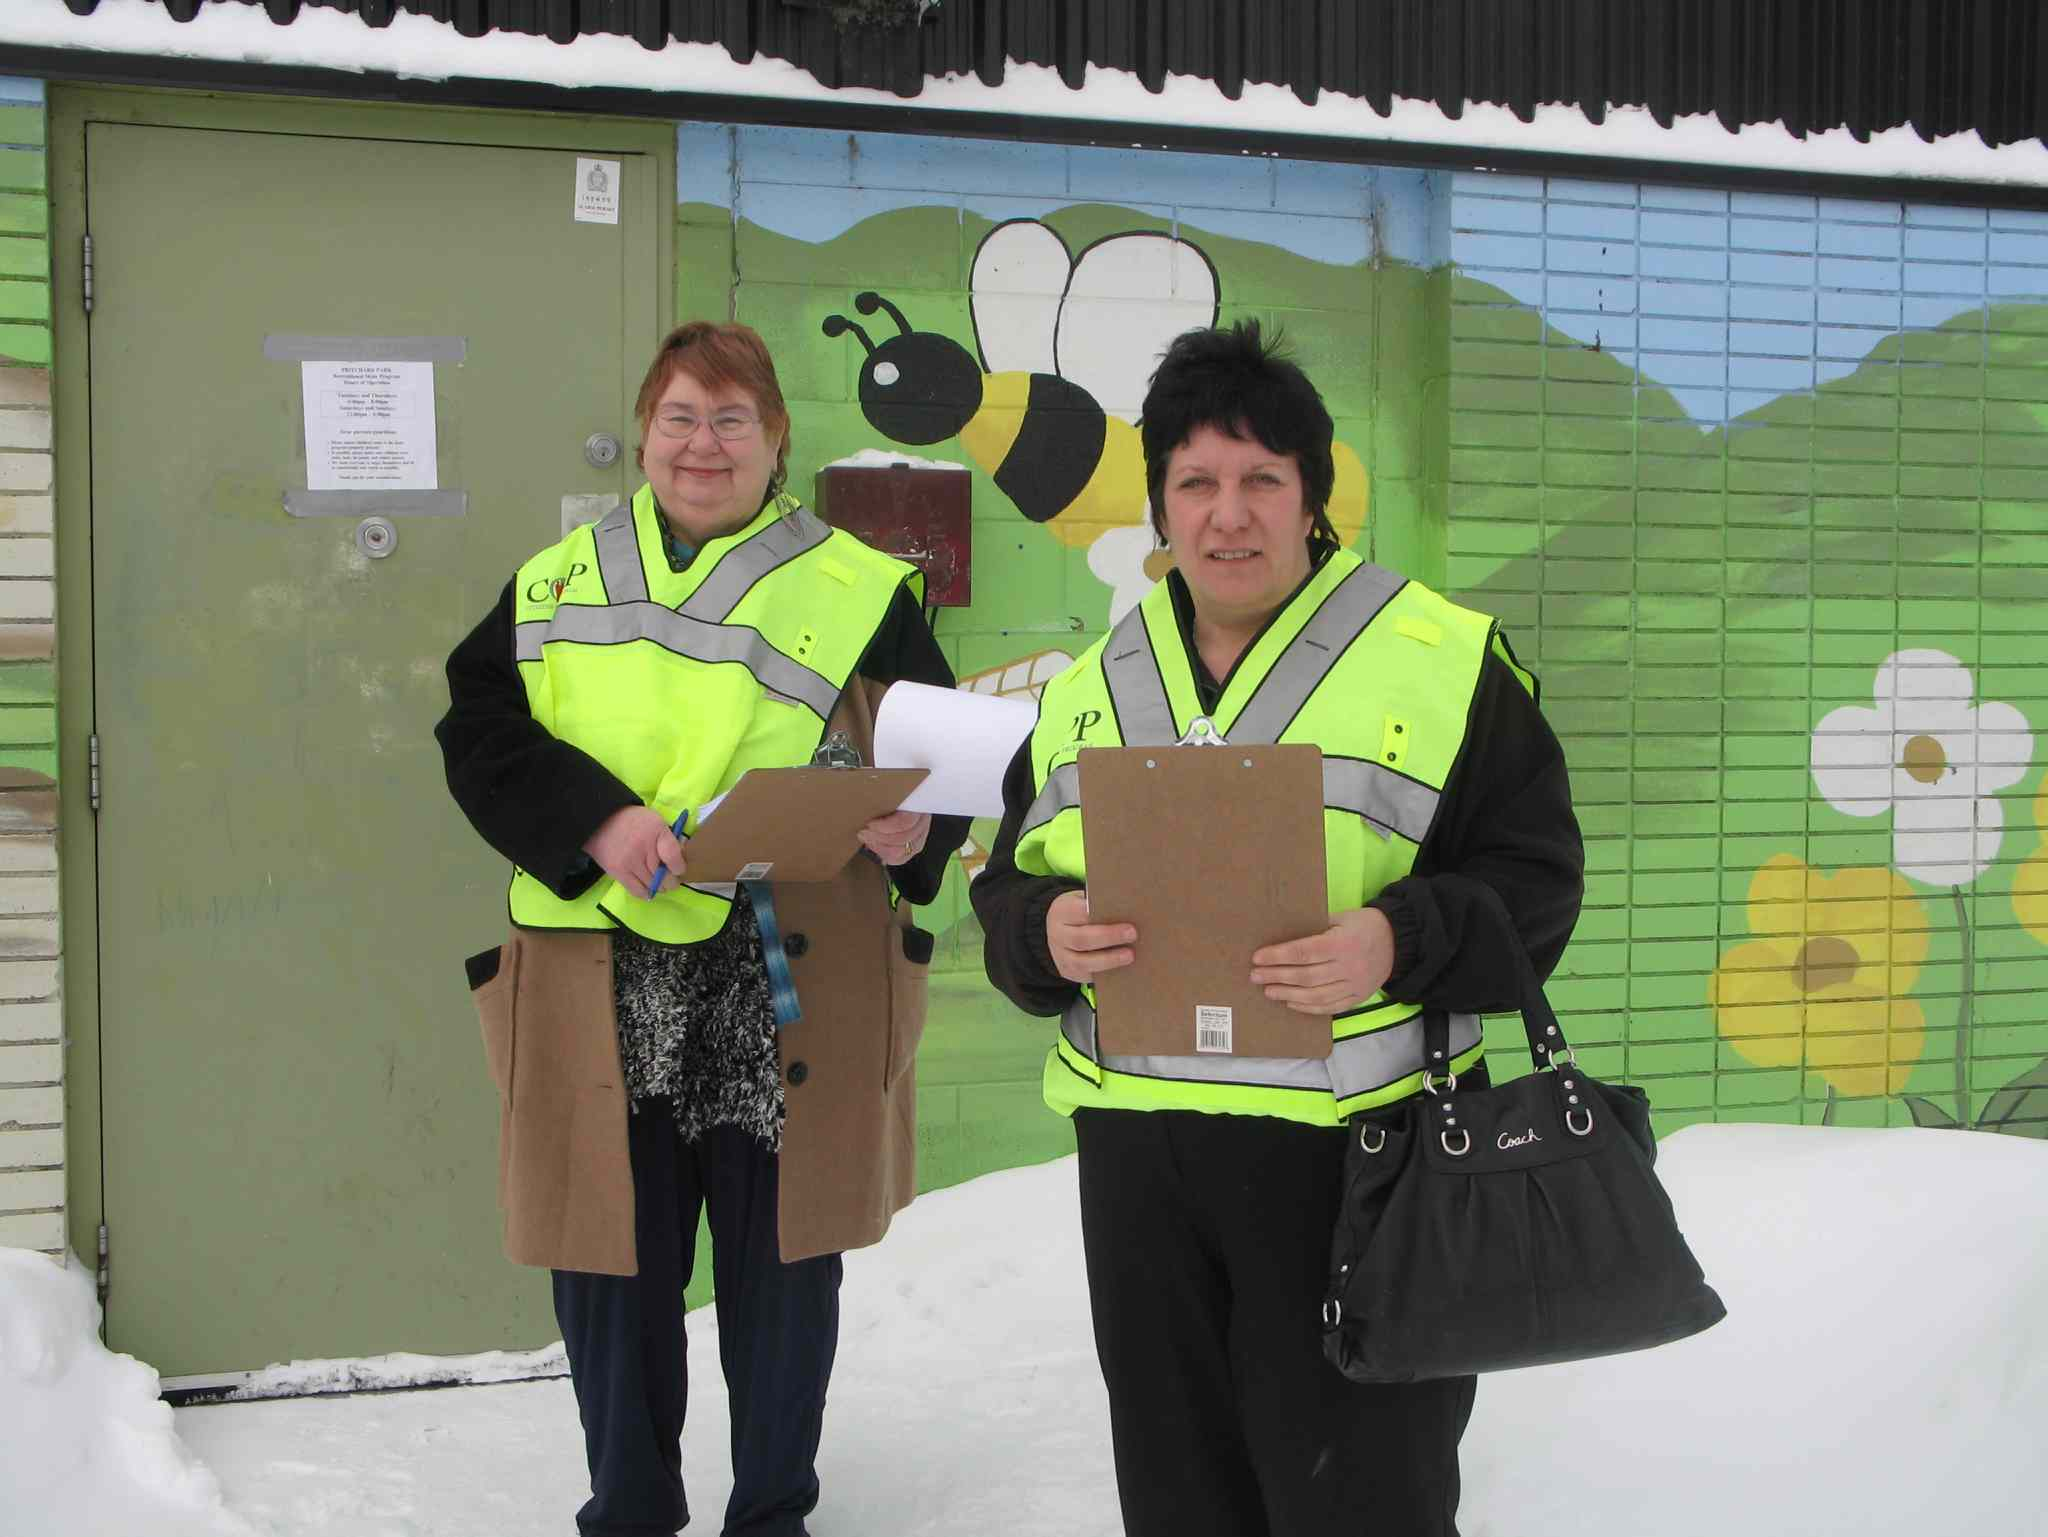 William Whyte residents Annette Champion-Taylor (right) and Doreen Szor take part in the Citizens on Patrol Program (COPP).